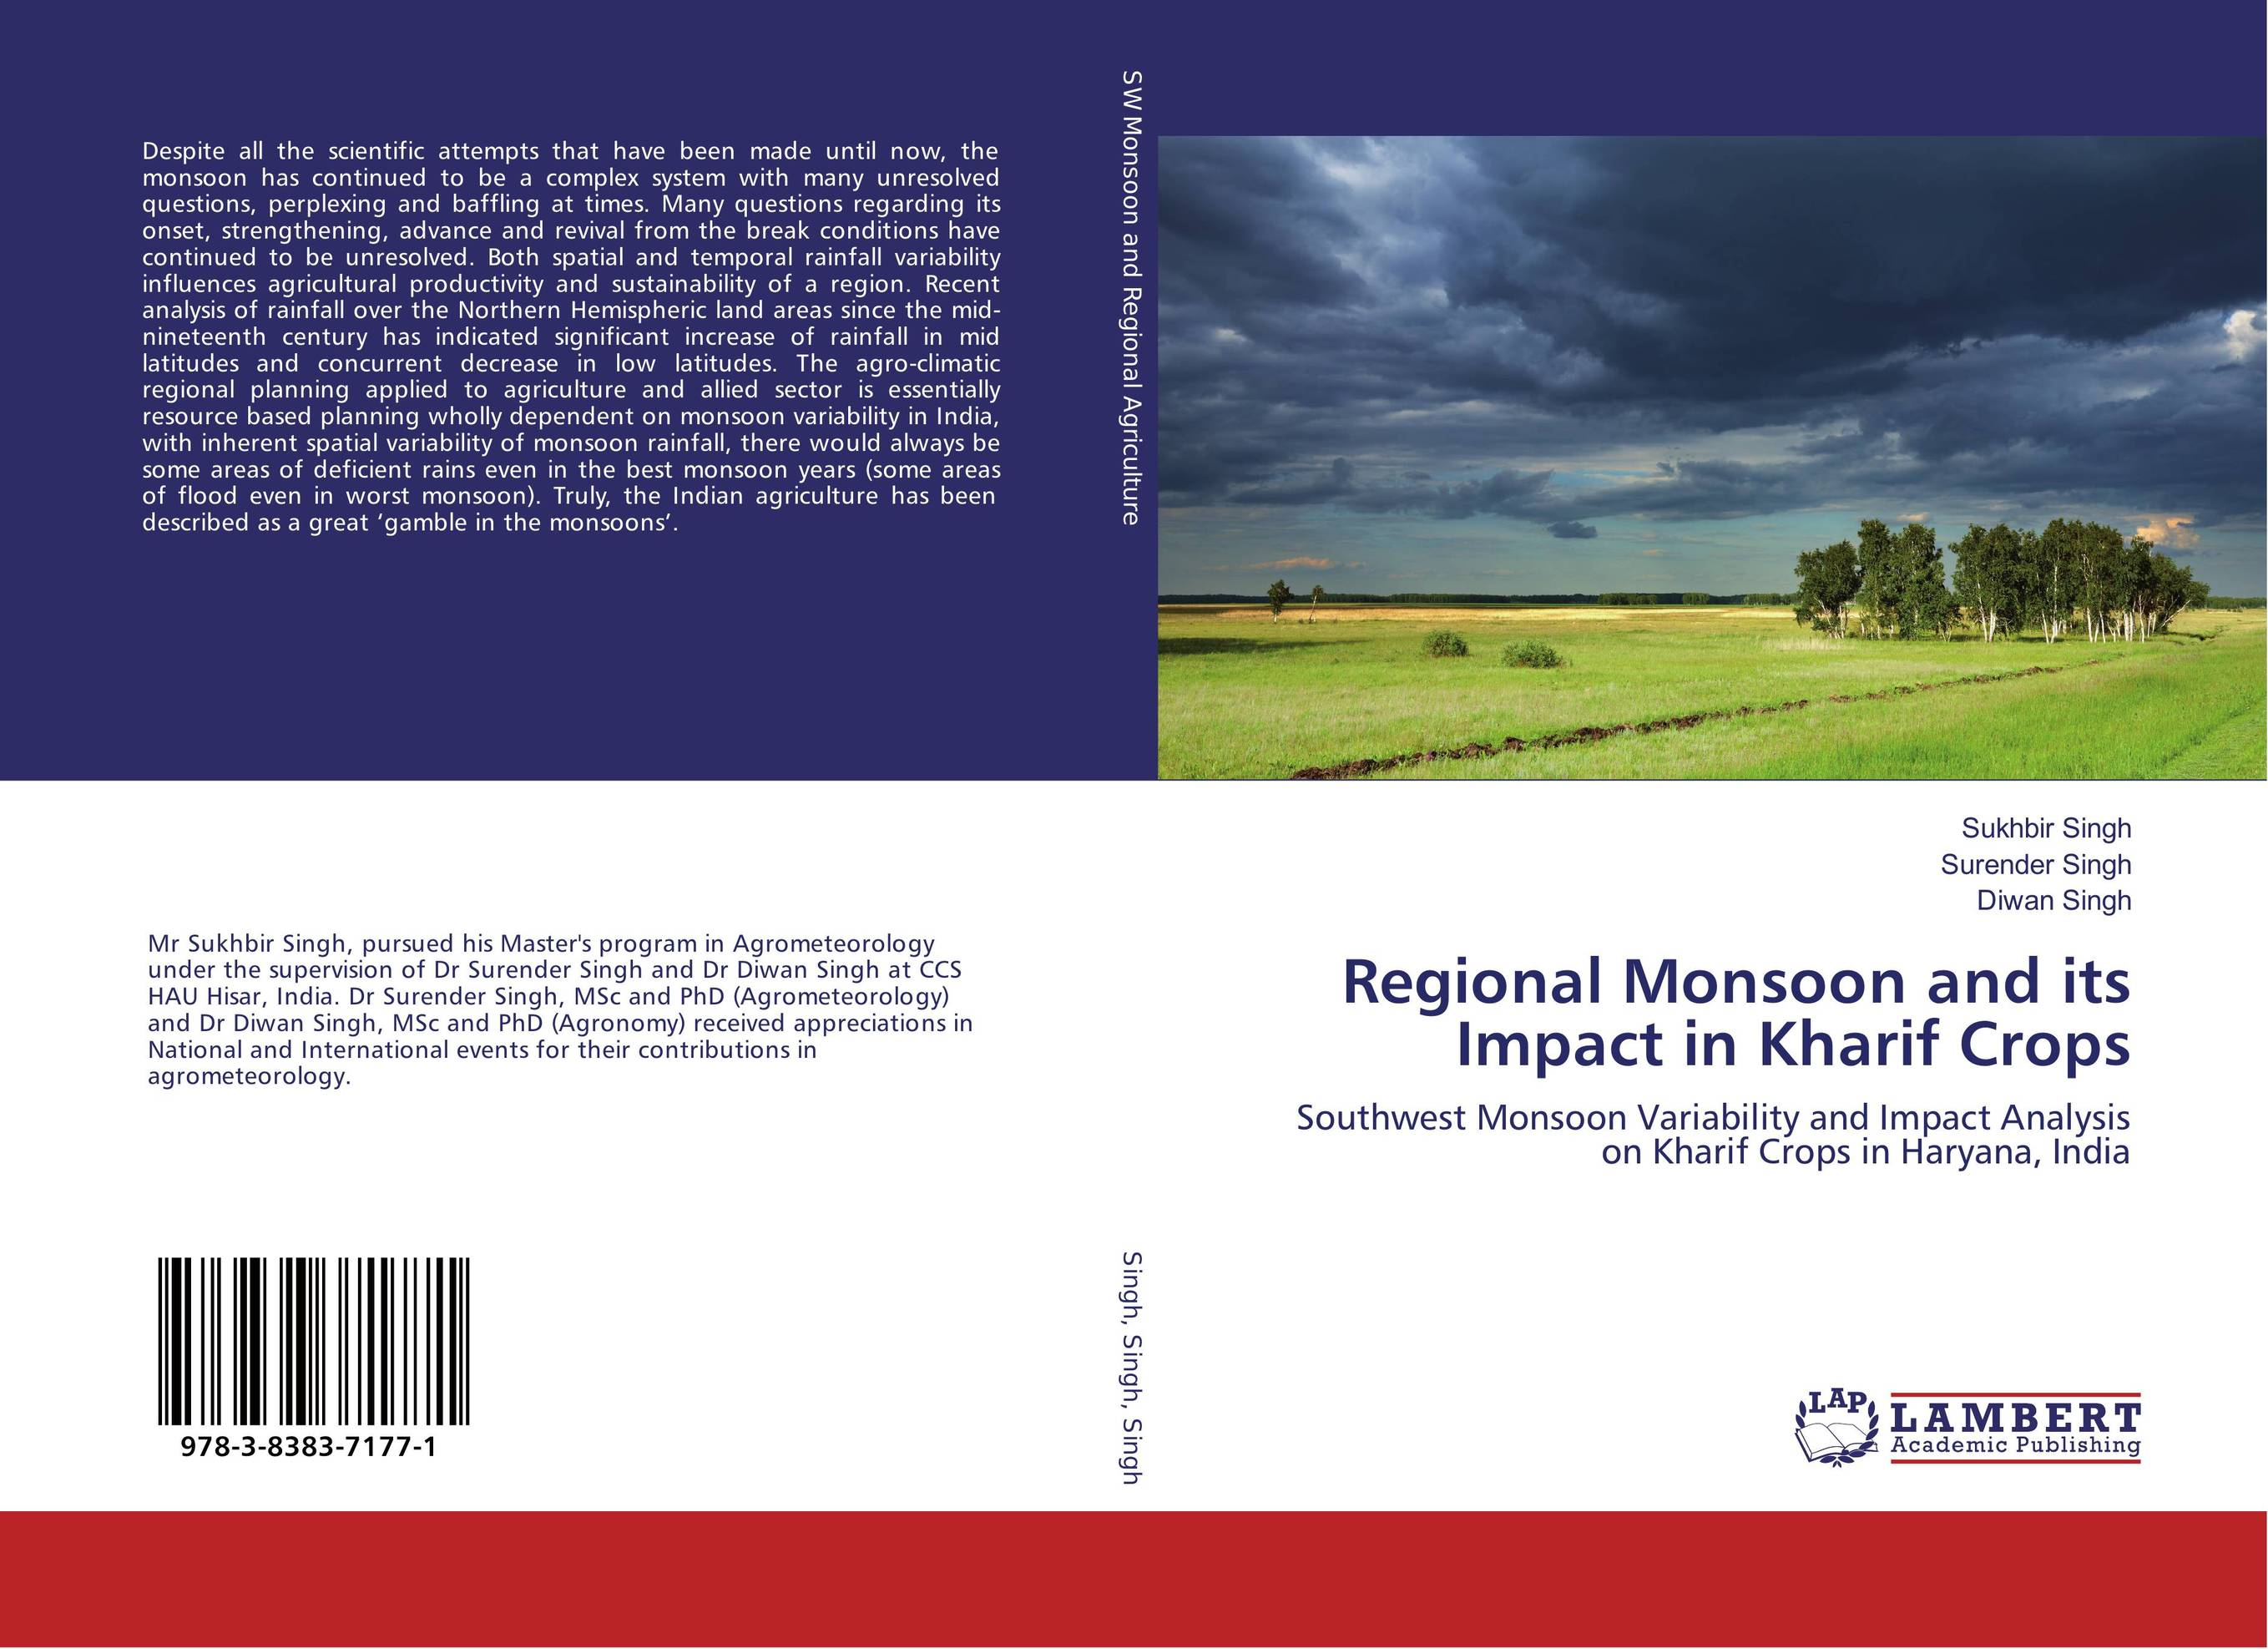 Regional Monsoon and its Impact in Kharif Crops latitudes